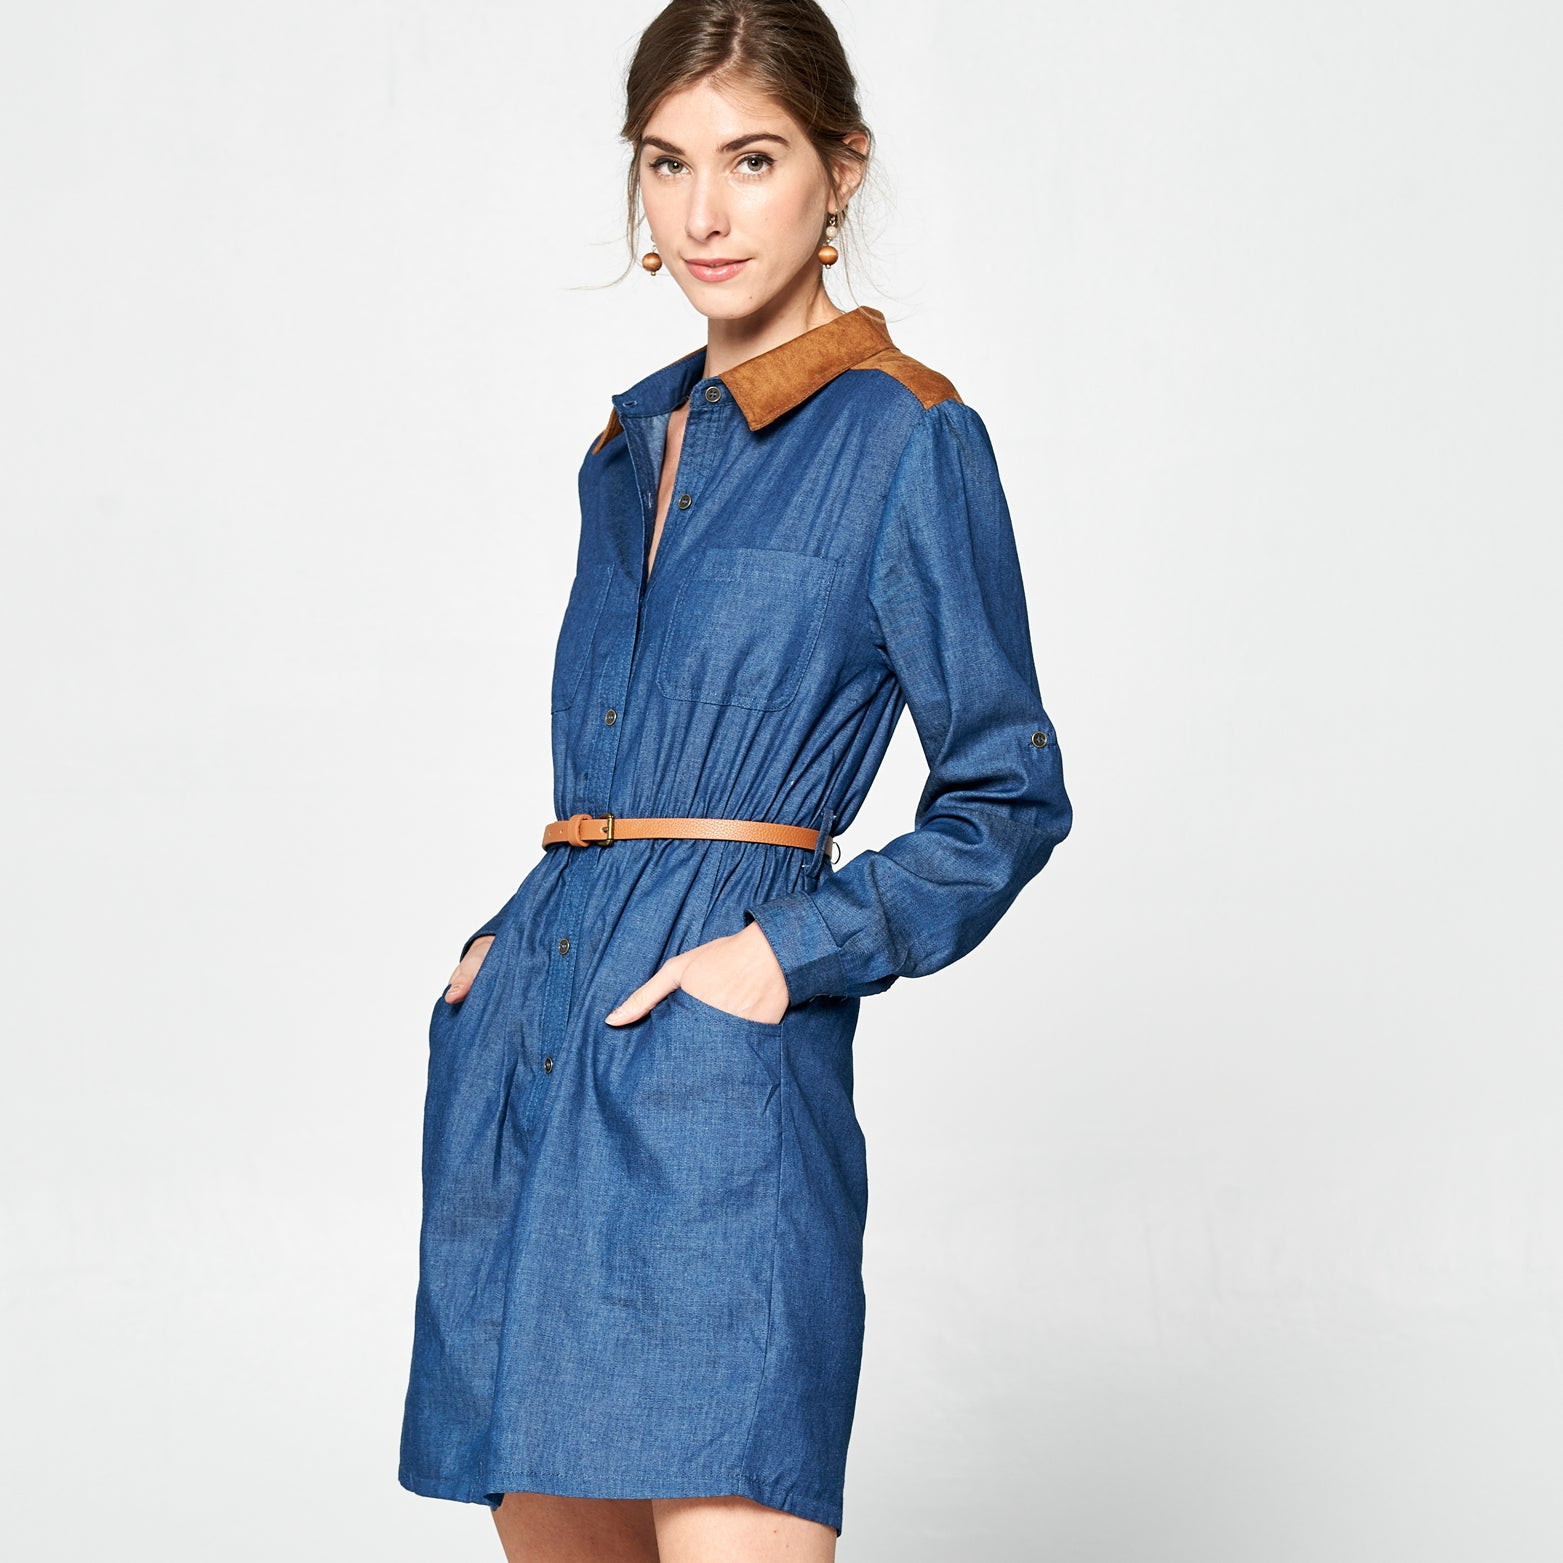 Denim & Suede Belted Dress